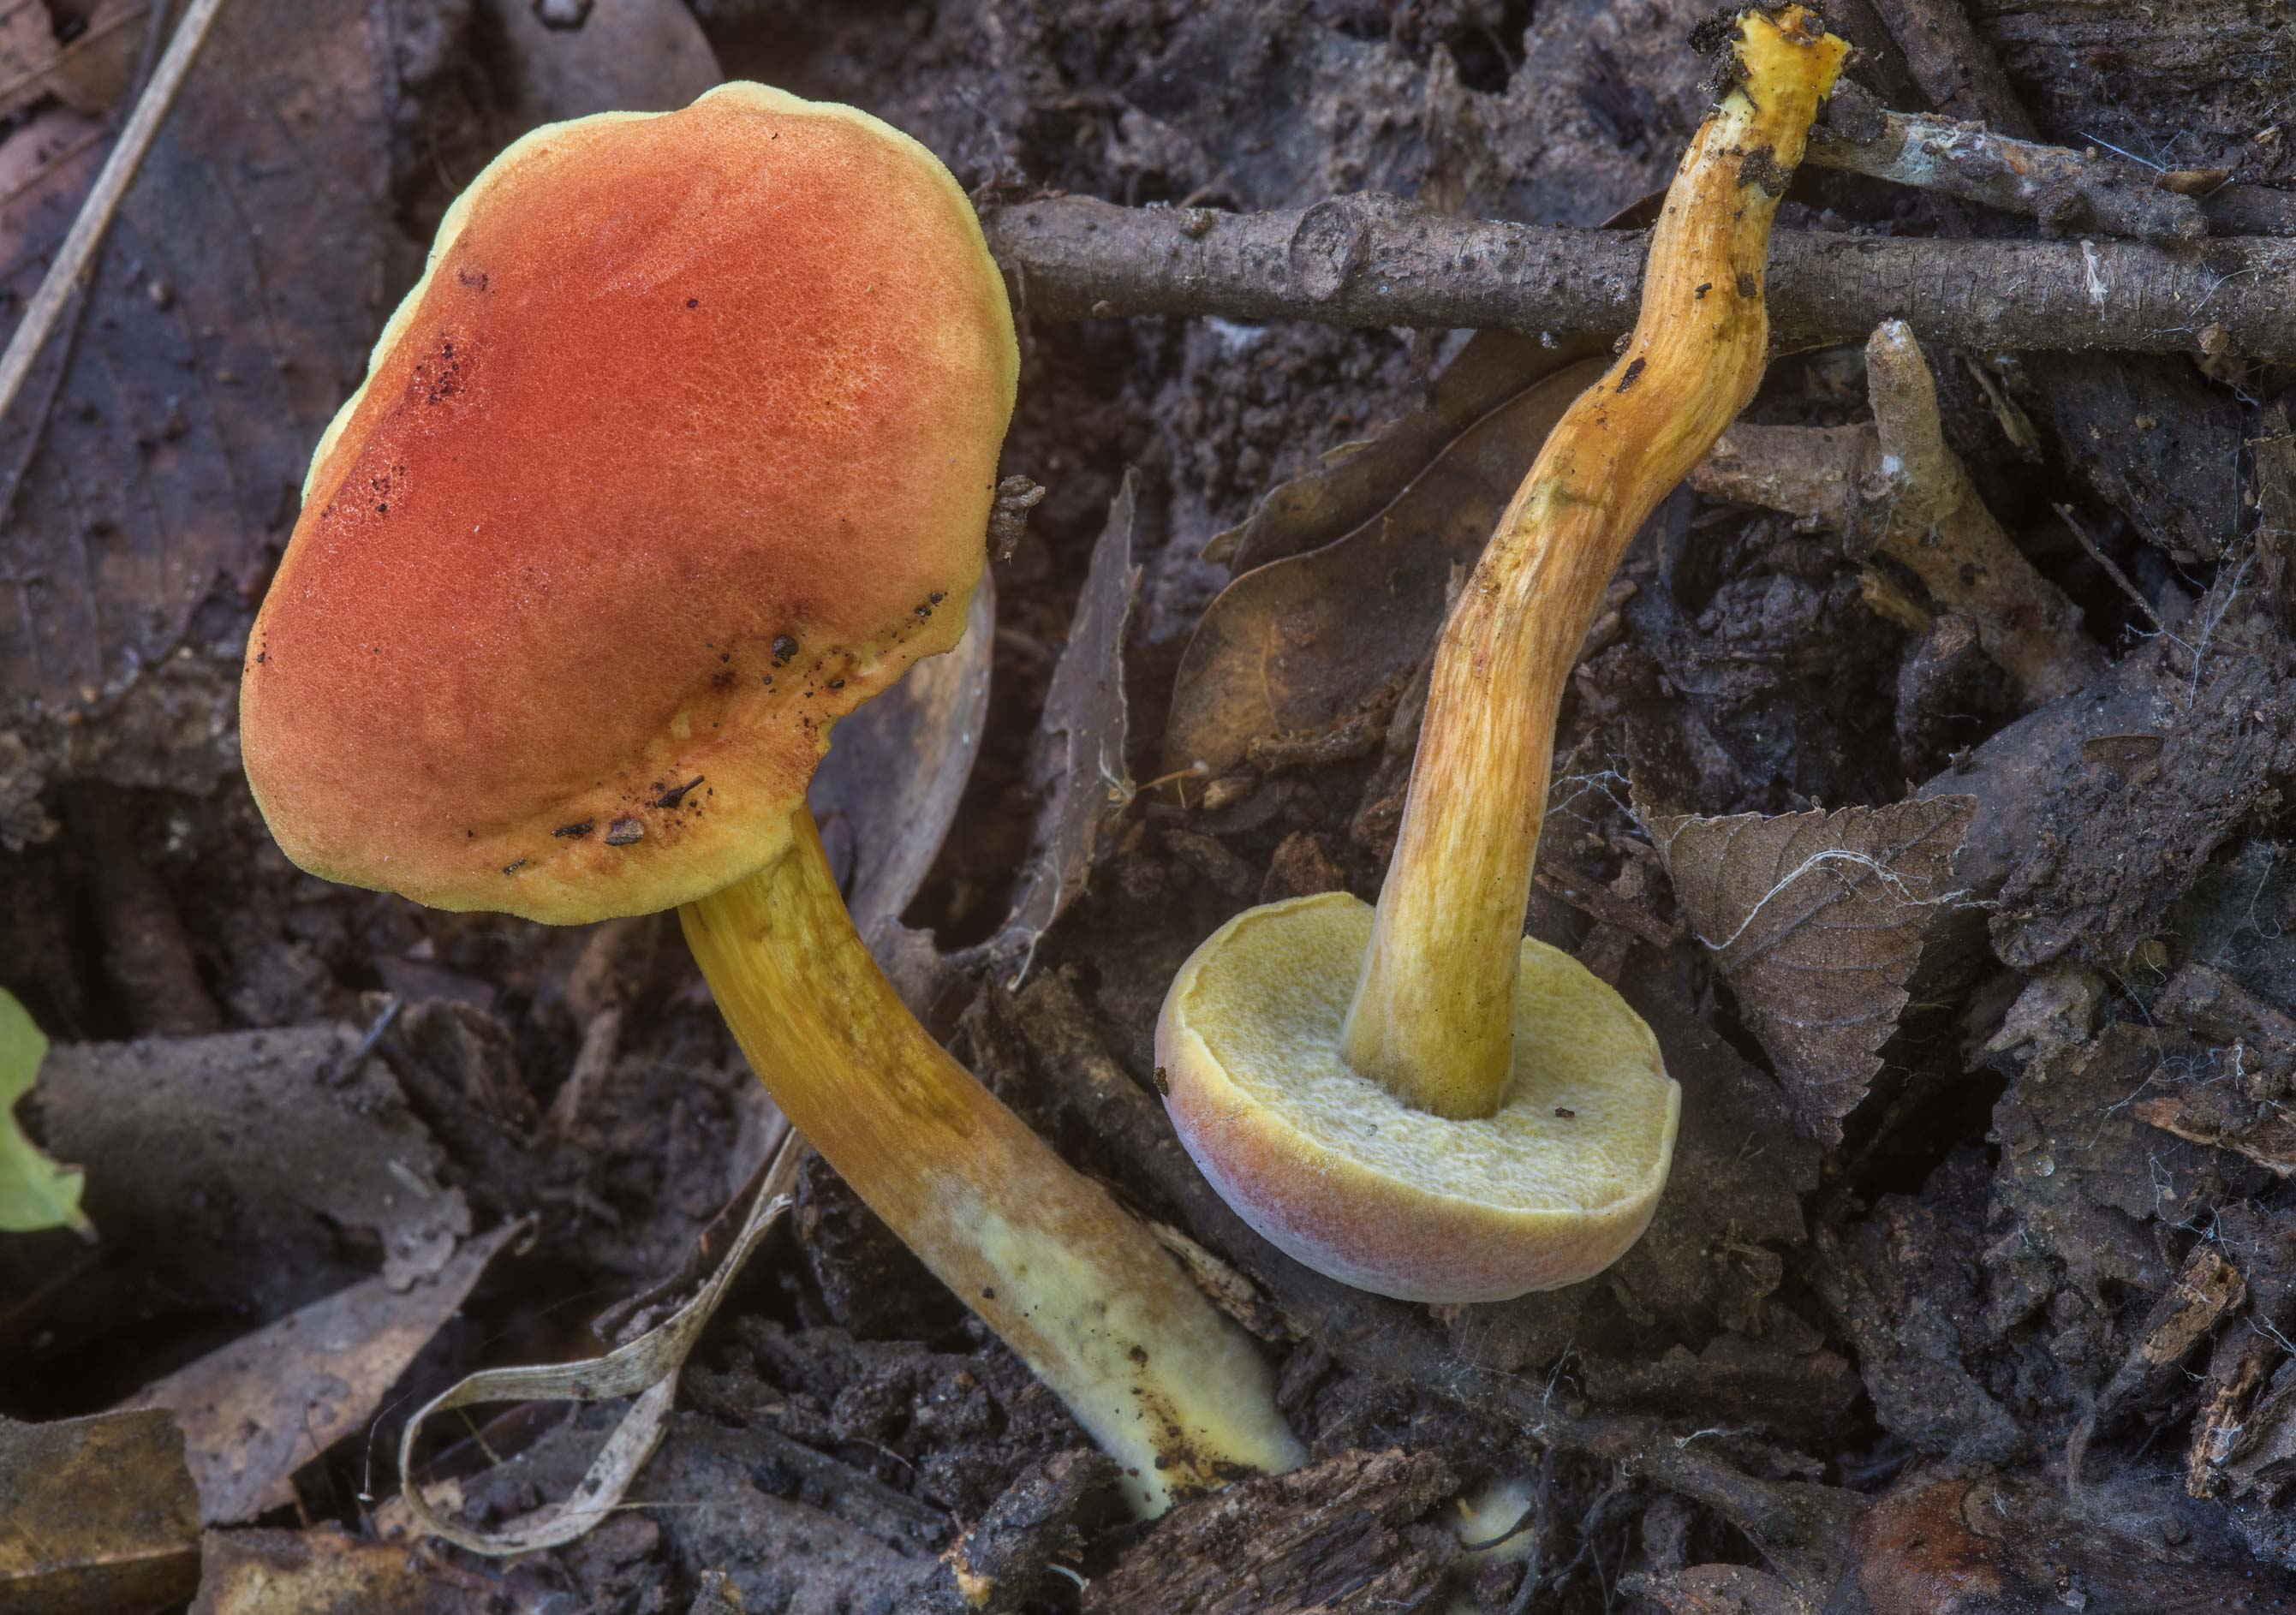 Small Hortiboletus mushrooms in Lick Creek Park. College Station, Texas